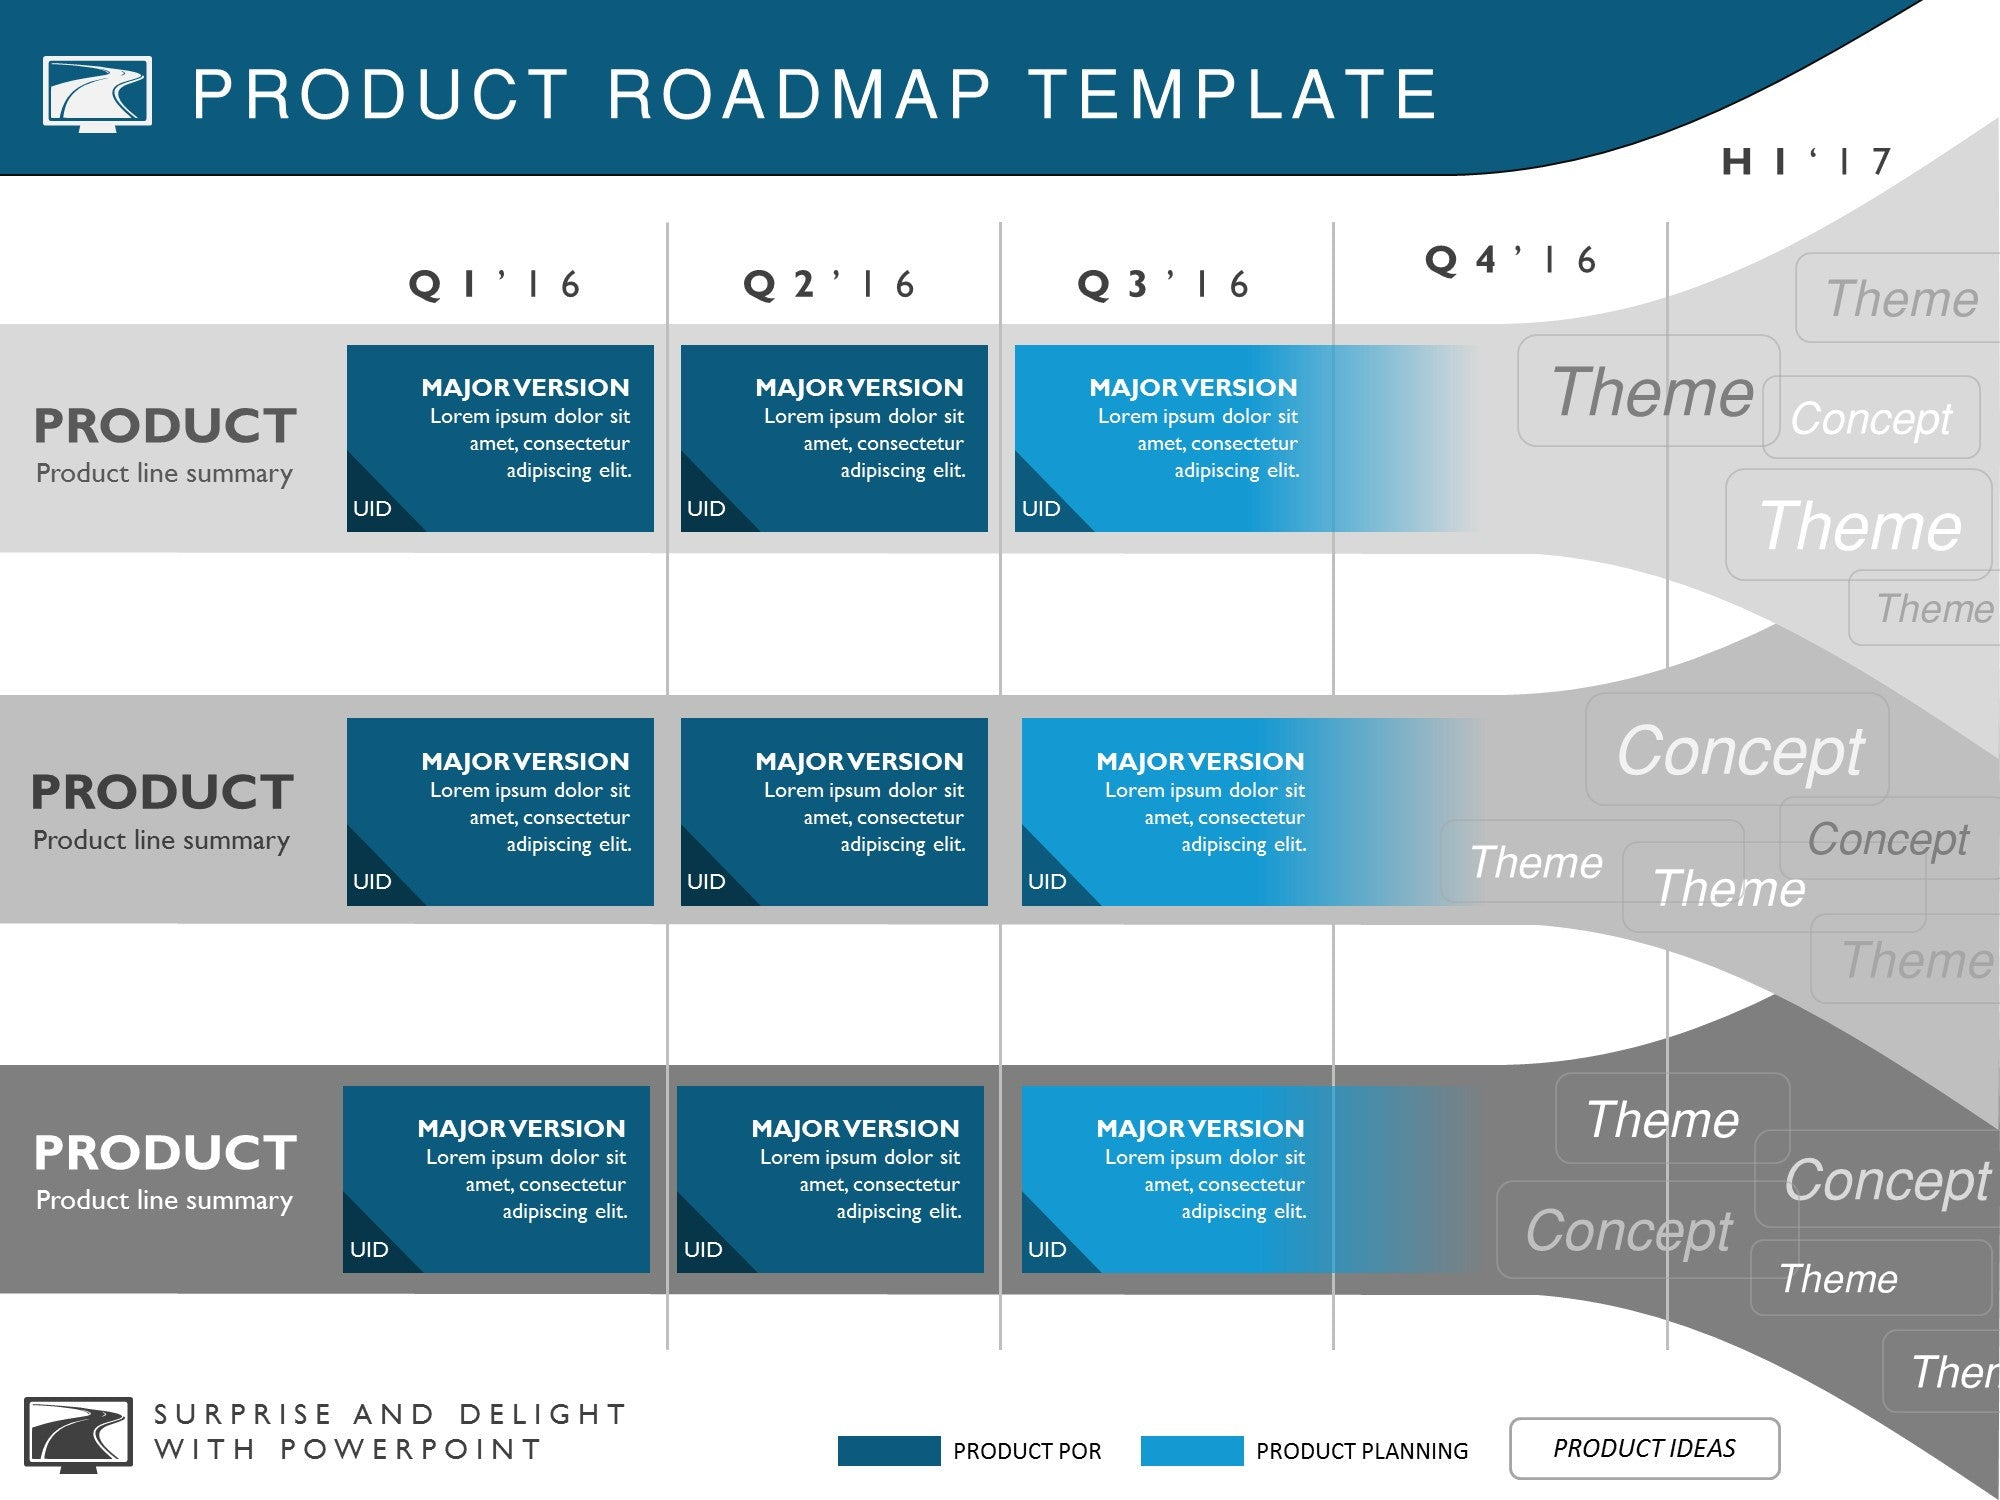 Product roadmap templates for powerpoint product strategy portfolio management development cycle project roadmap agile planning simple plan template diagram powerpoint technology alramifo Image collections